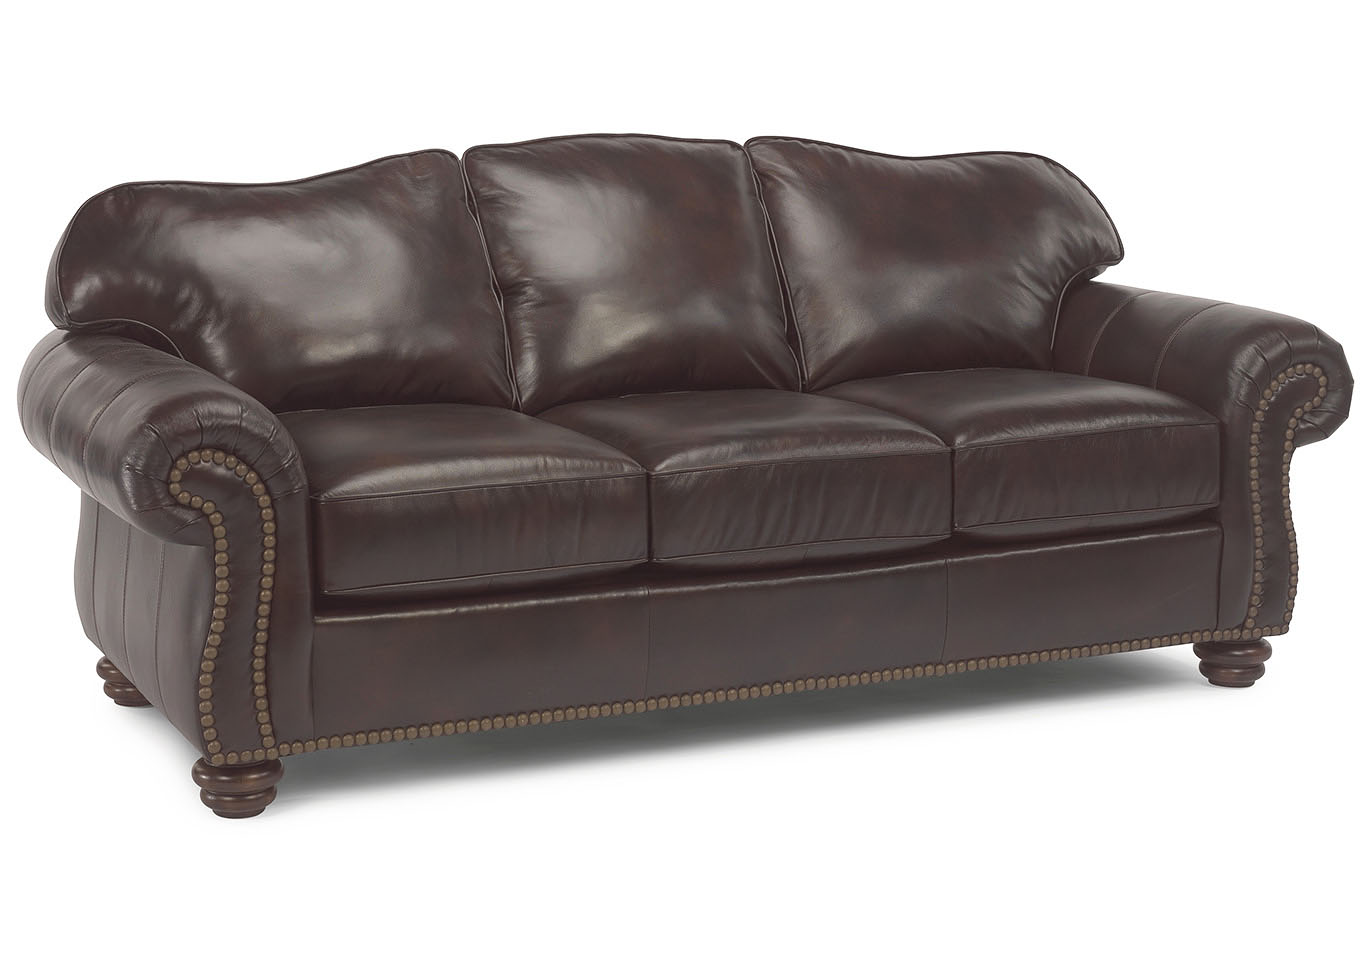 Country House Furniture Bexley Leather Sofa w/Nailhead Trim